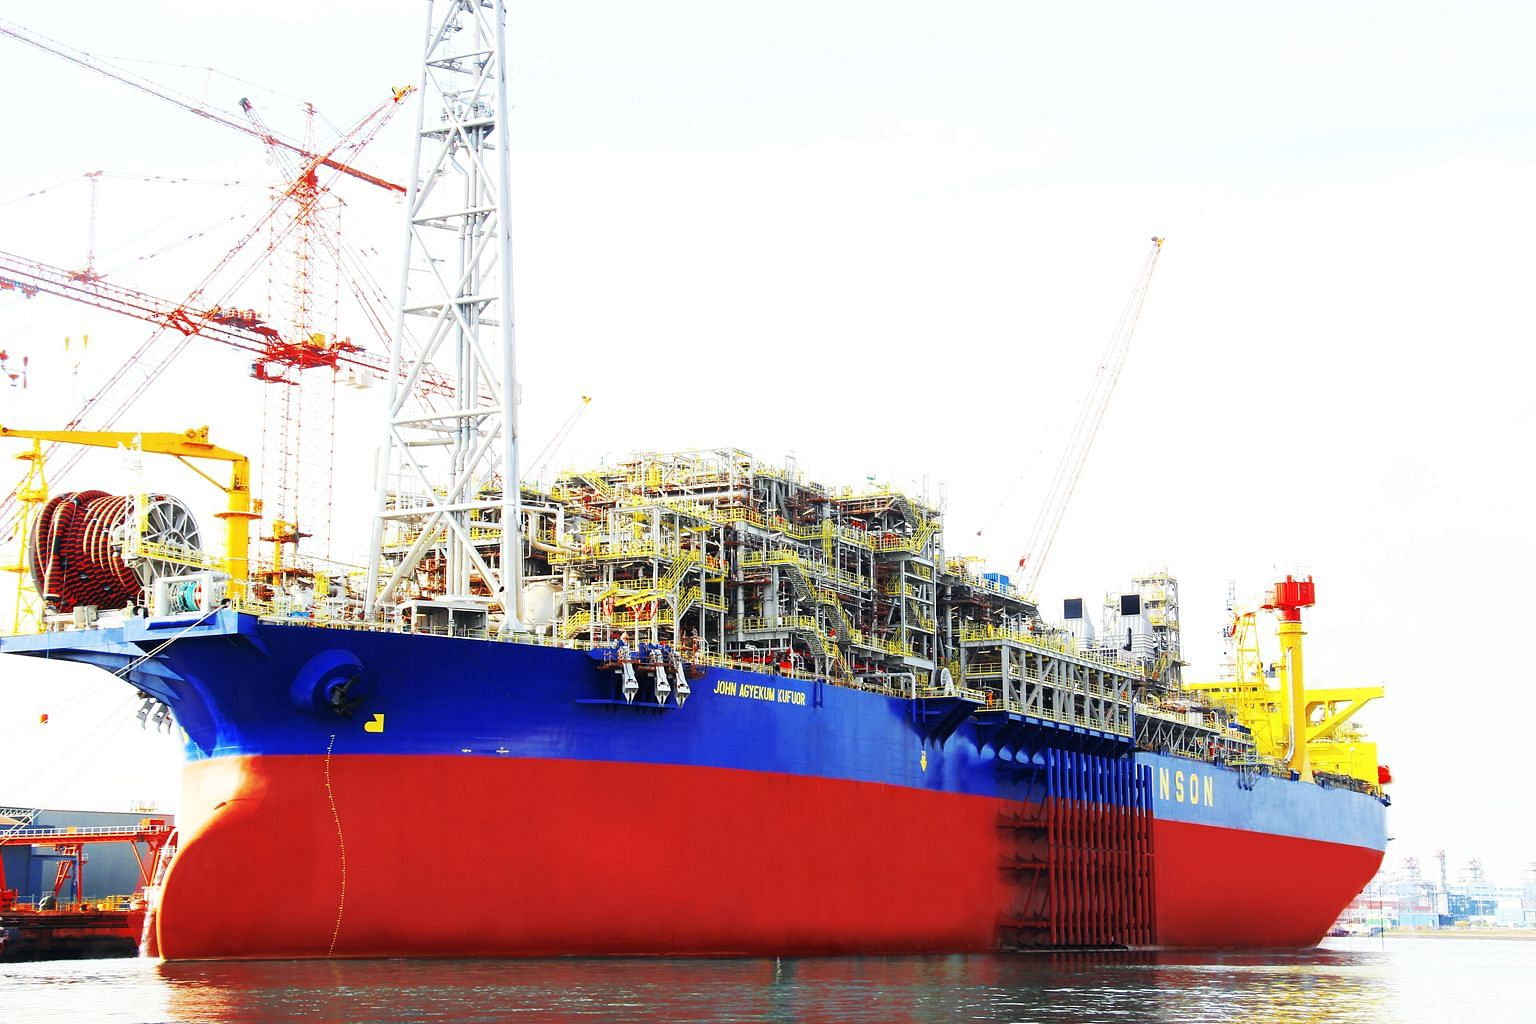 Oil trading giant Vitol chose to build its largest floating production, storage and offloading vessel, the John Agyekum Kufuor (above), here.